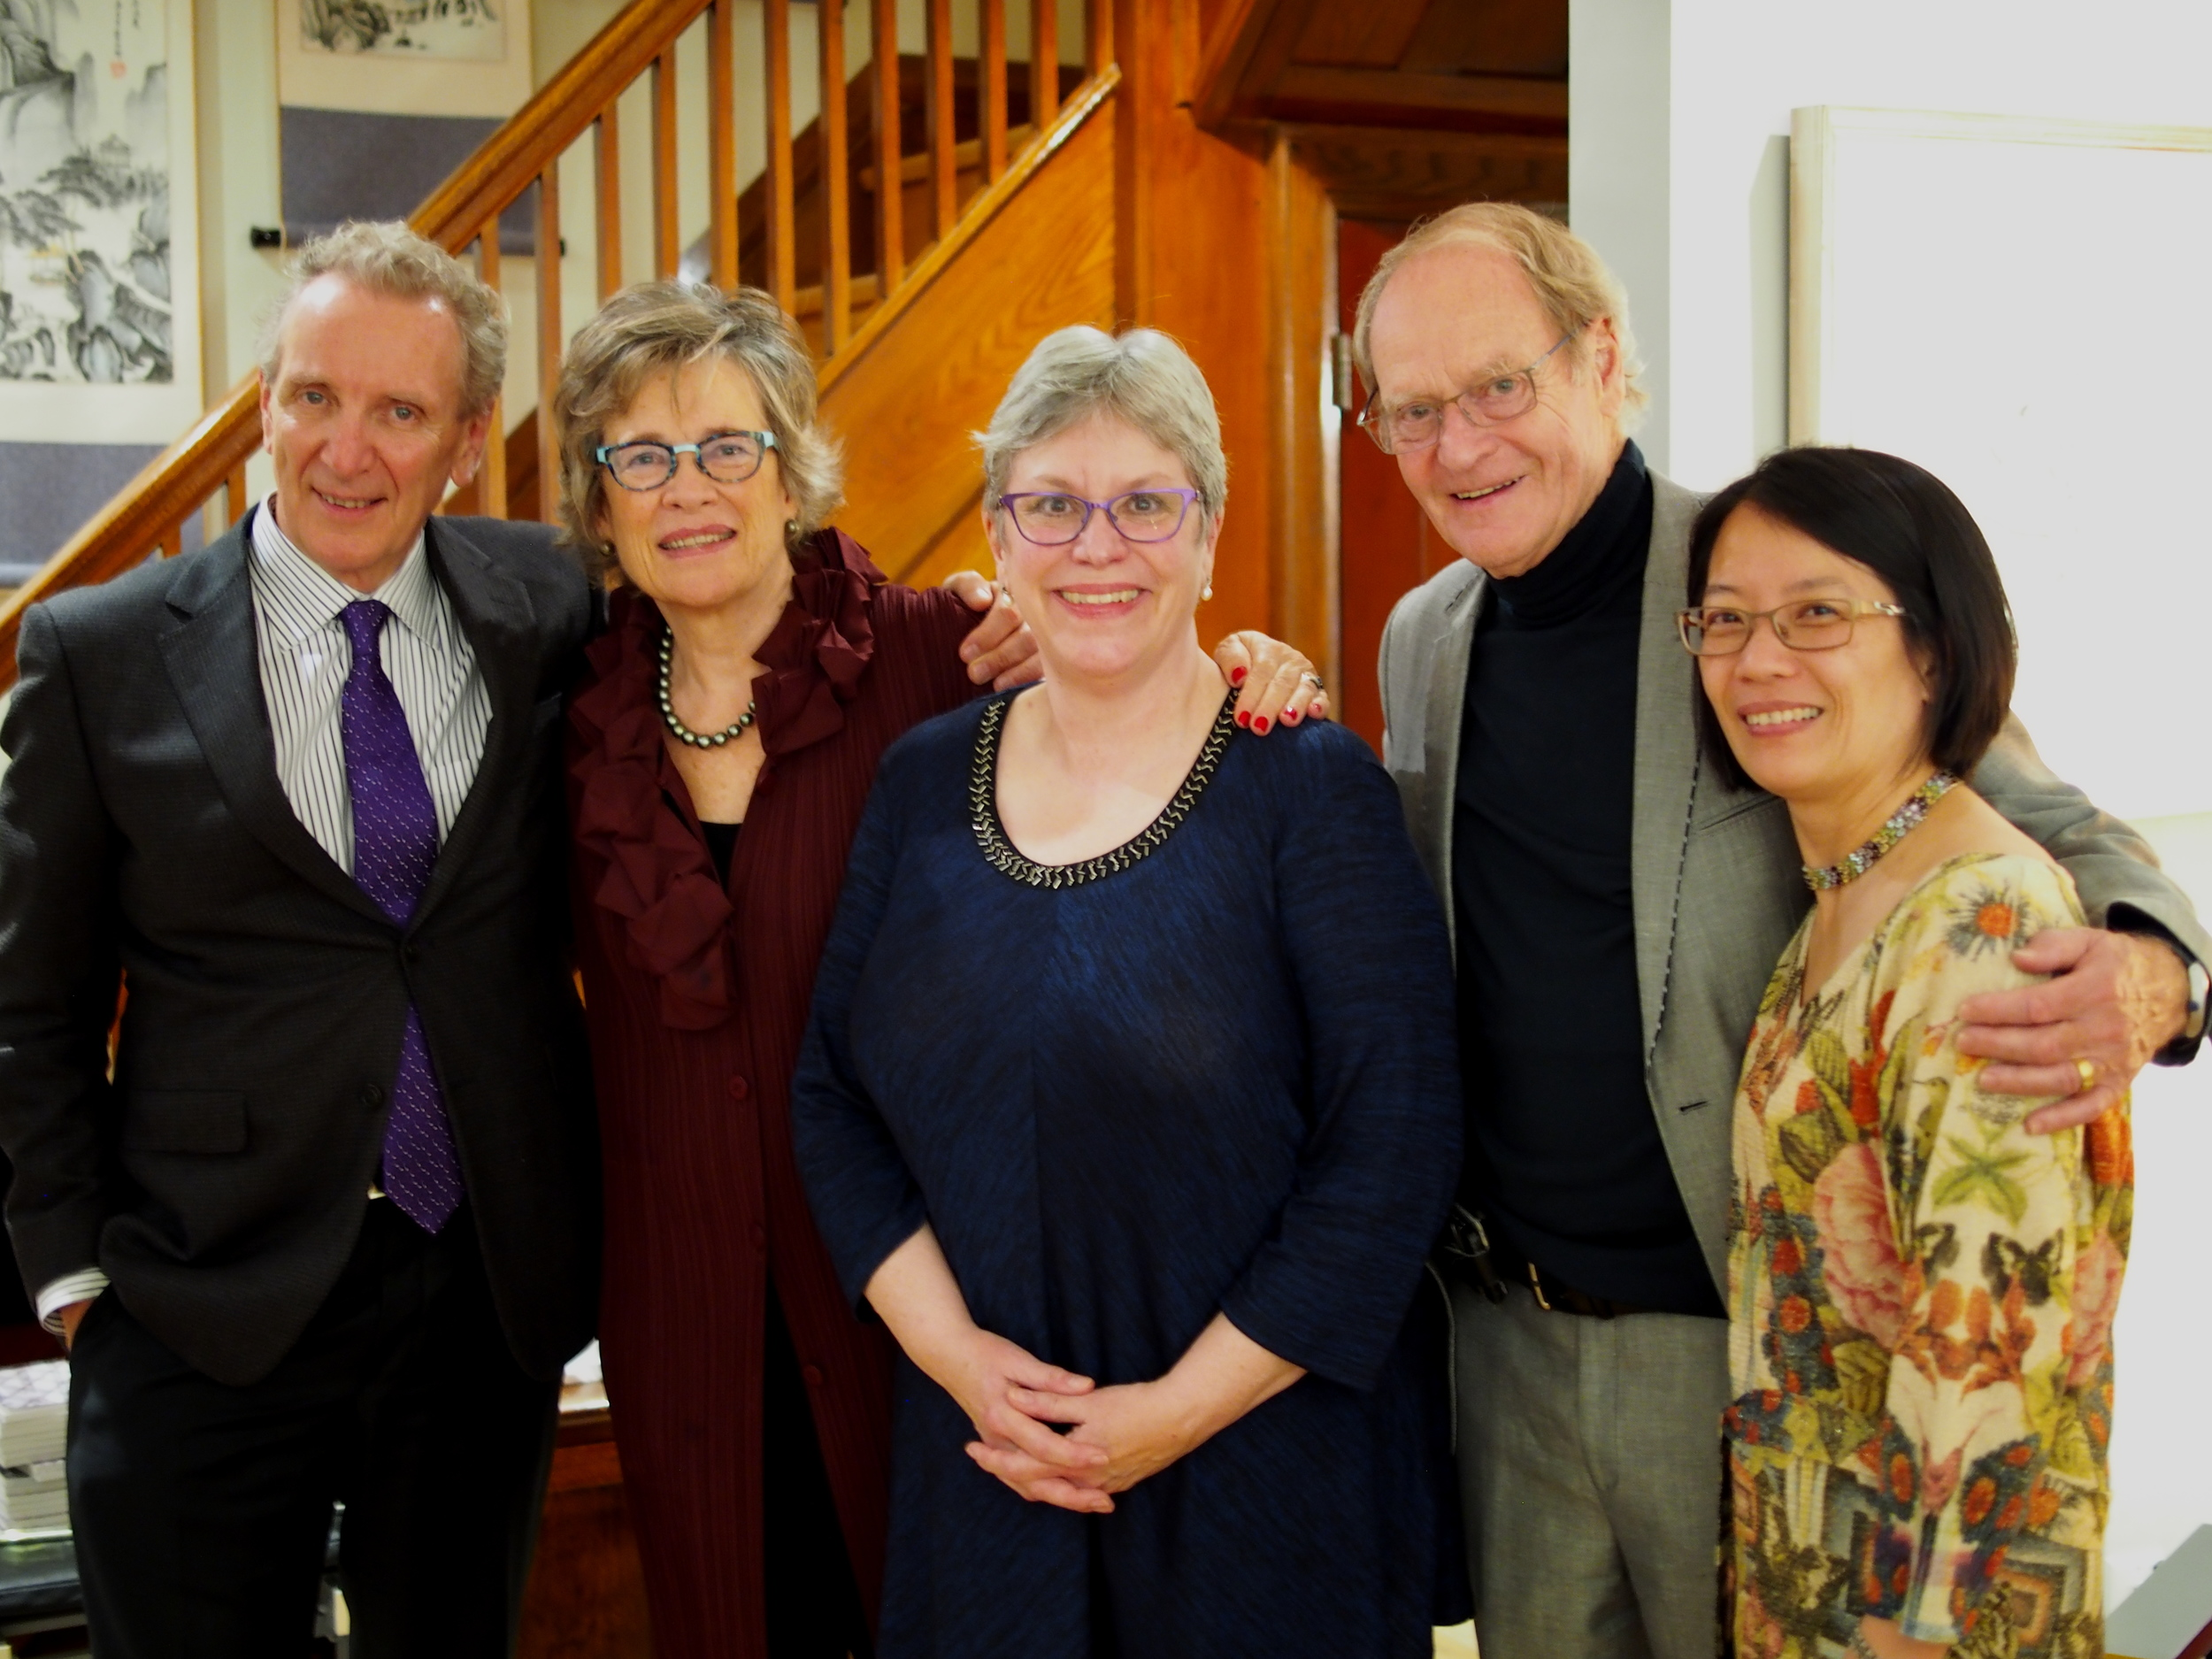 From left to right: Eric Friessen, Carol, Isobel Heathcote, John Wright, and Chung-Wai Chow.